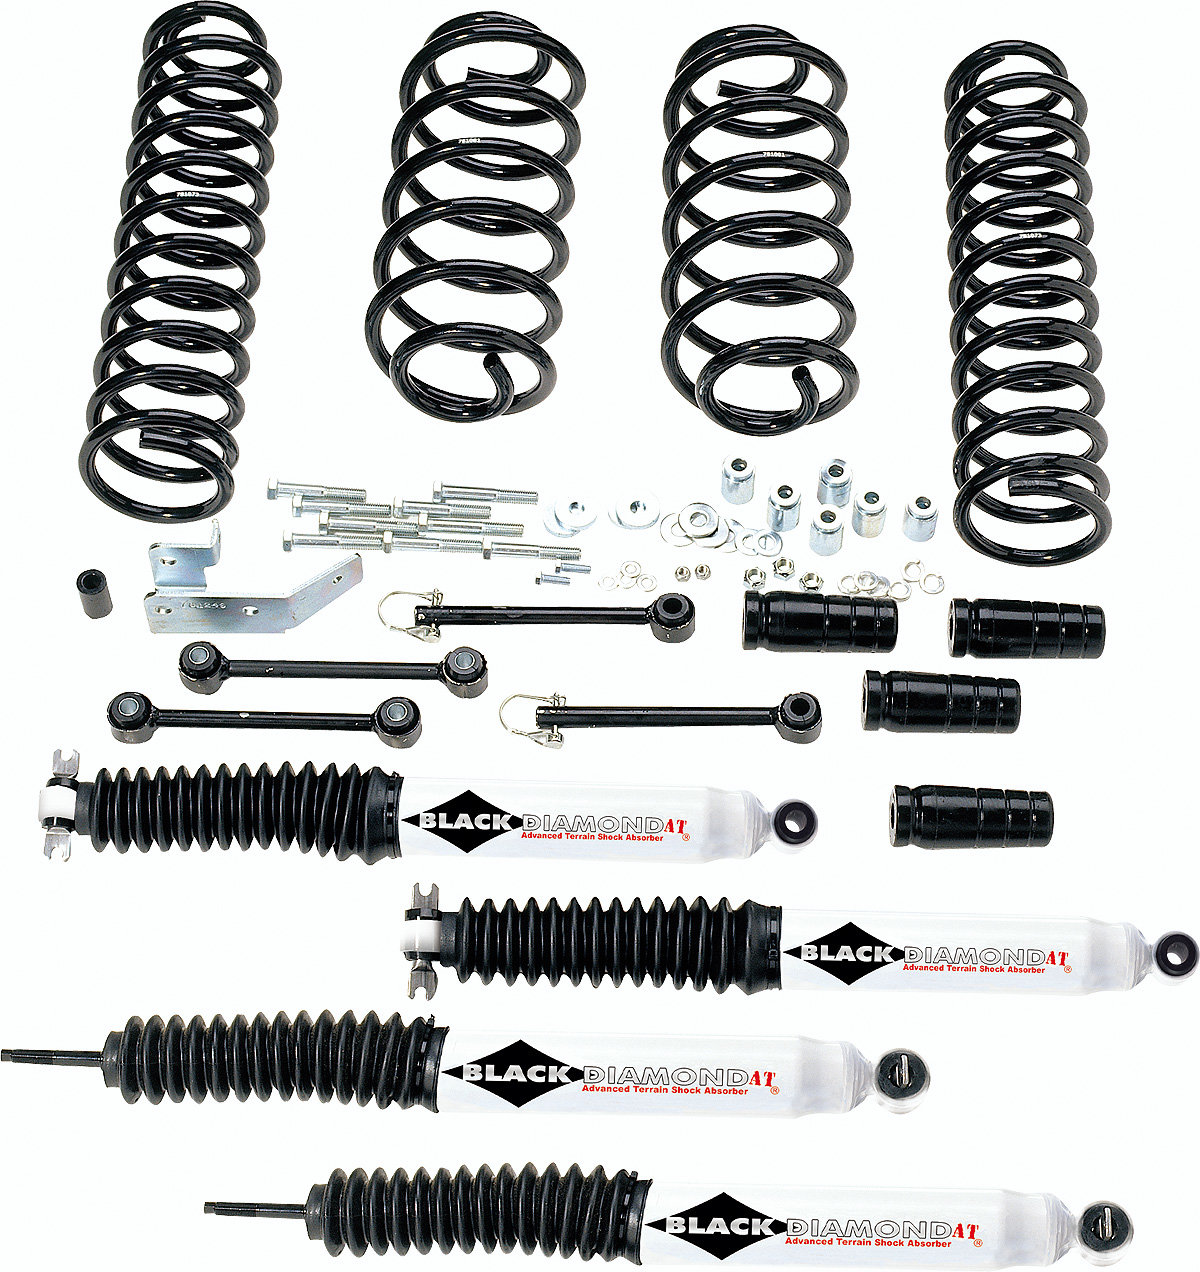 Black Diamond 3 Suspension Lift Kit With At Shocks For 97